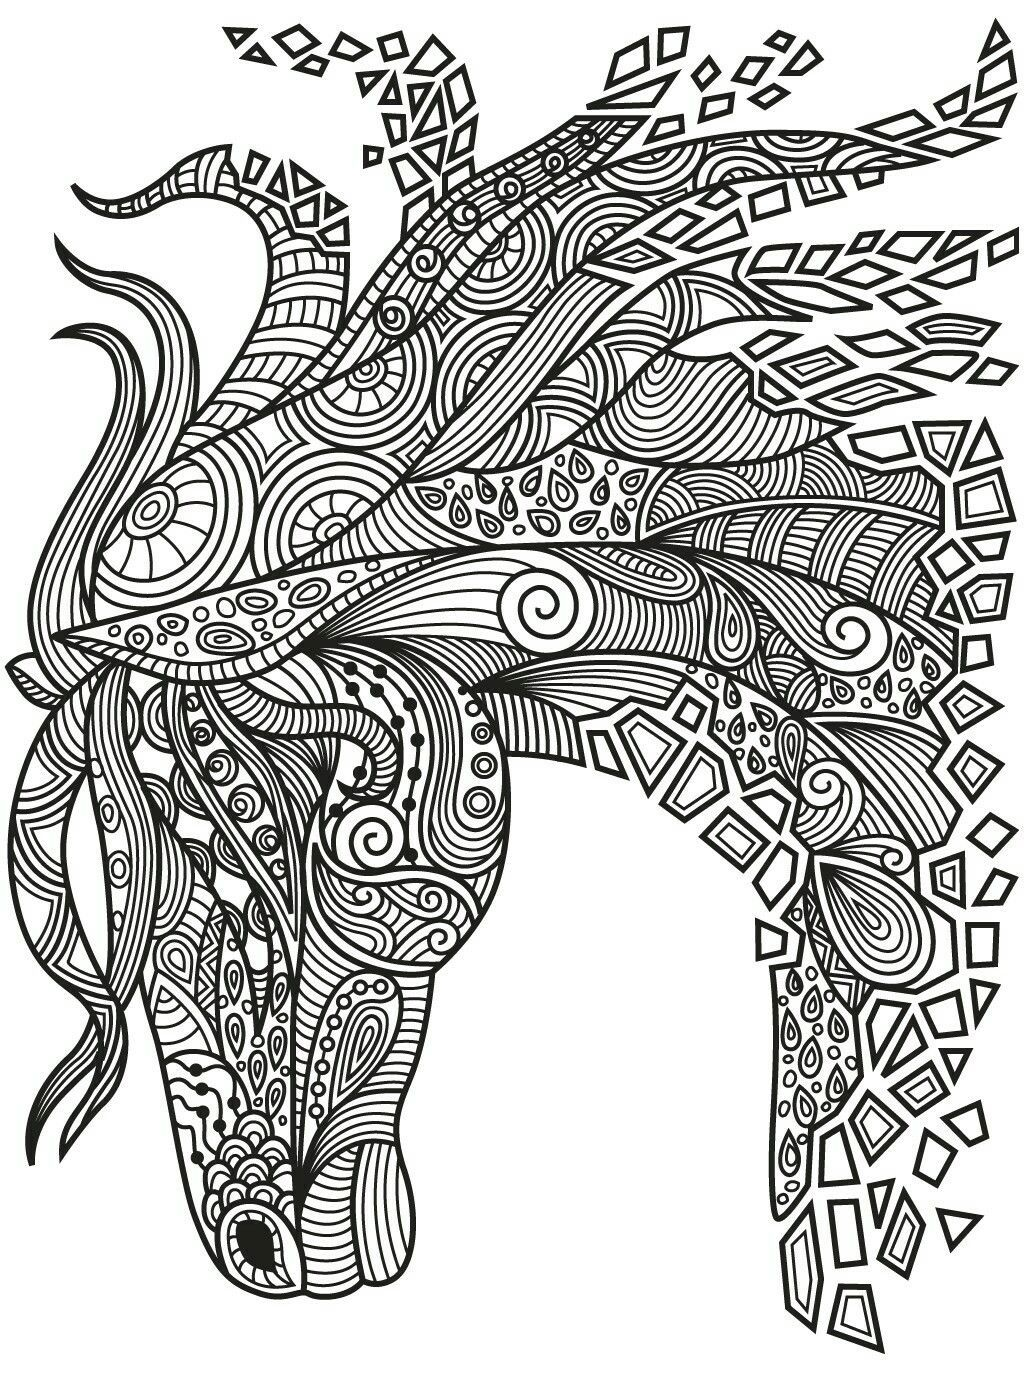 Best Zentangle Horse Colorish Coloring Book App For Adults